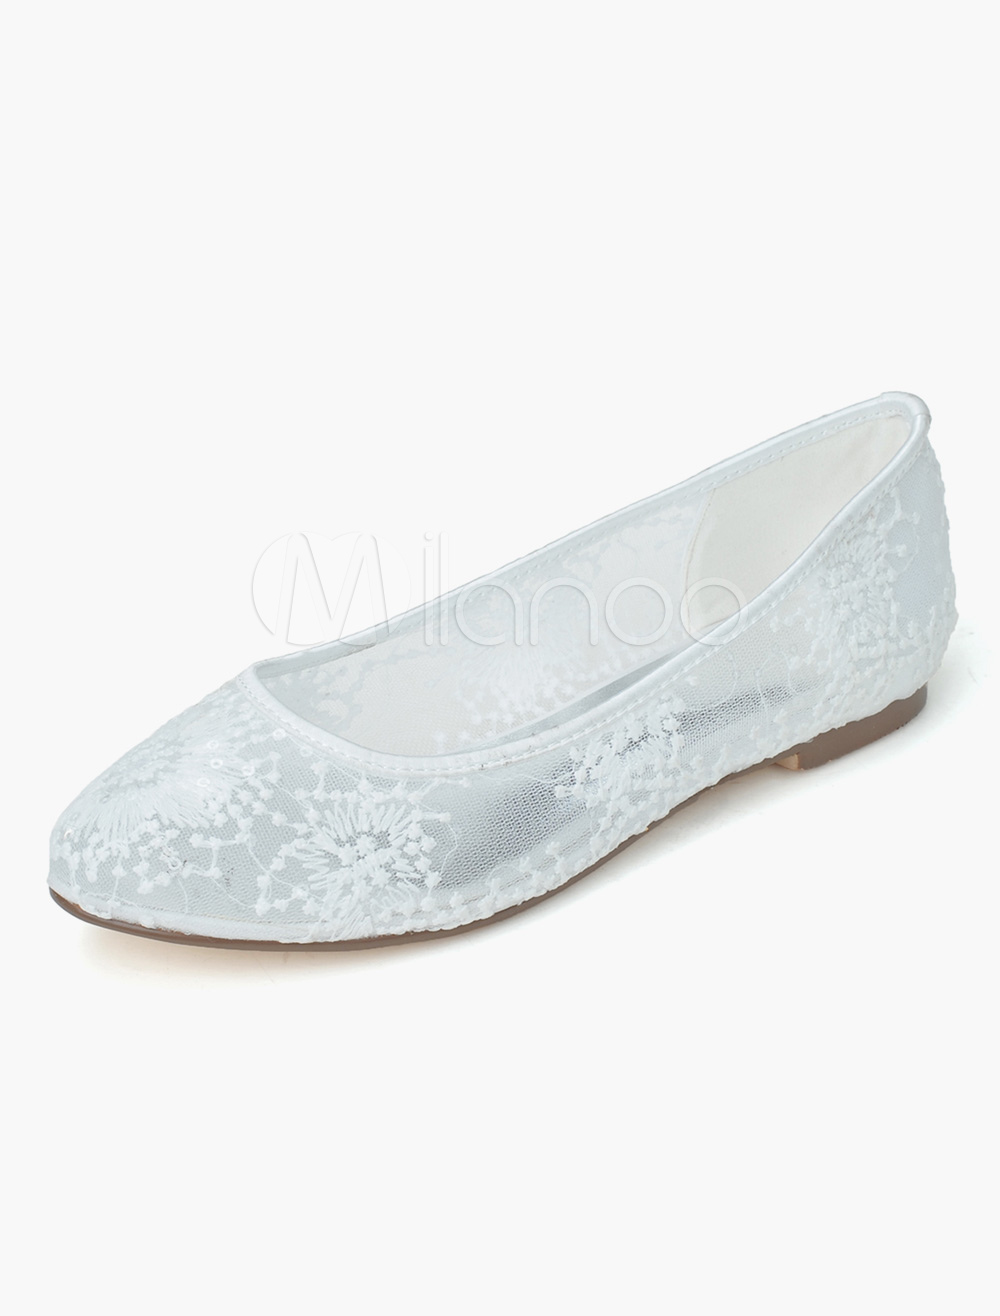 White Almond Toe Lace Romantic Flats